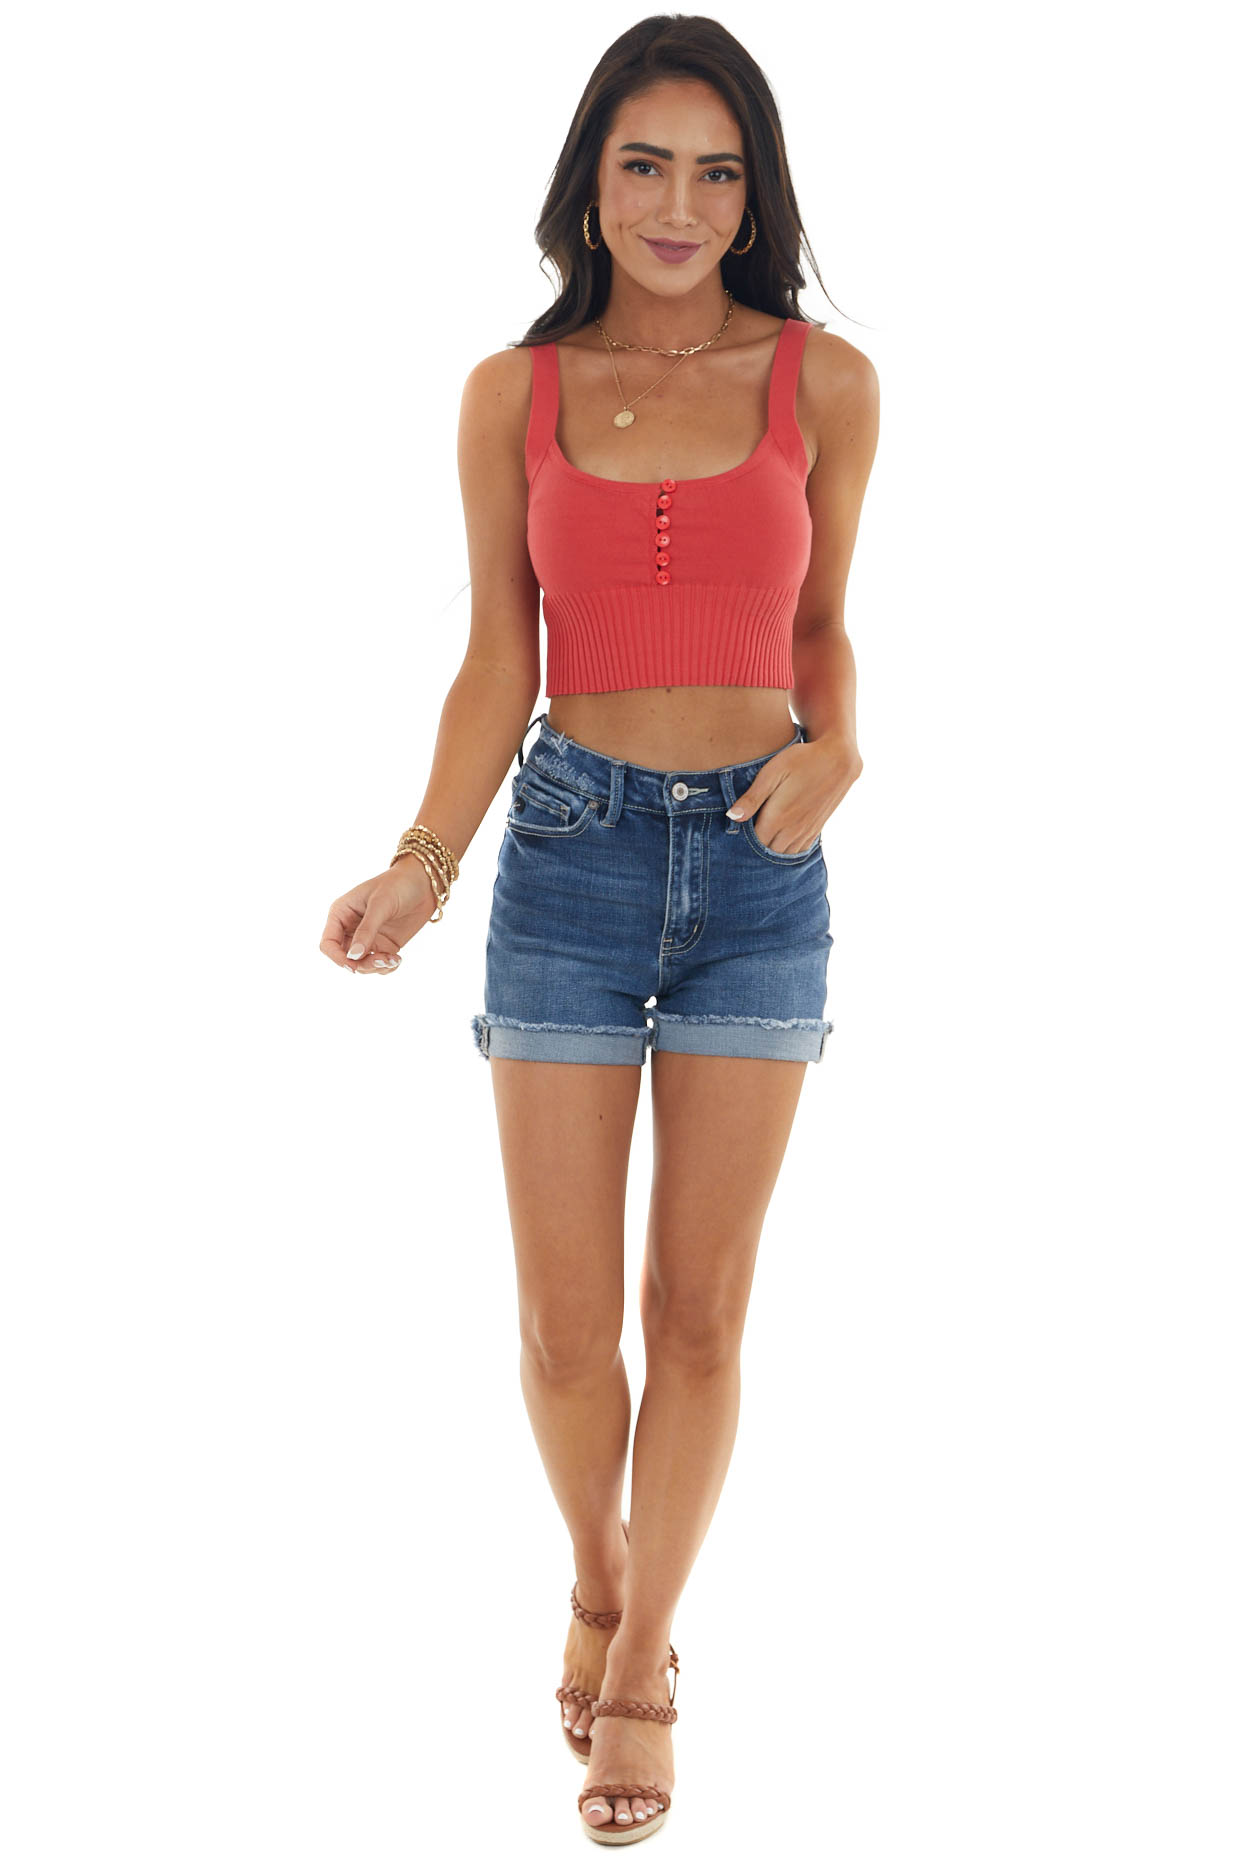 Scarlet Sleeveless Knit Crop Top with Buttons